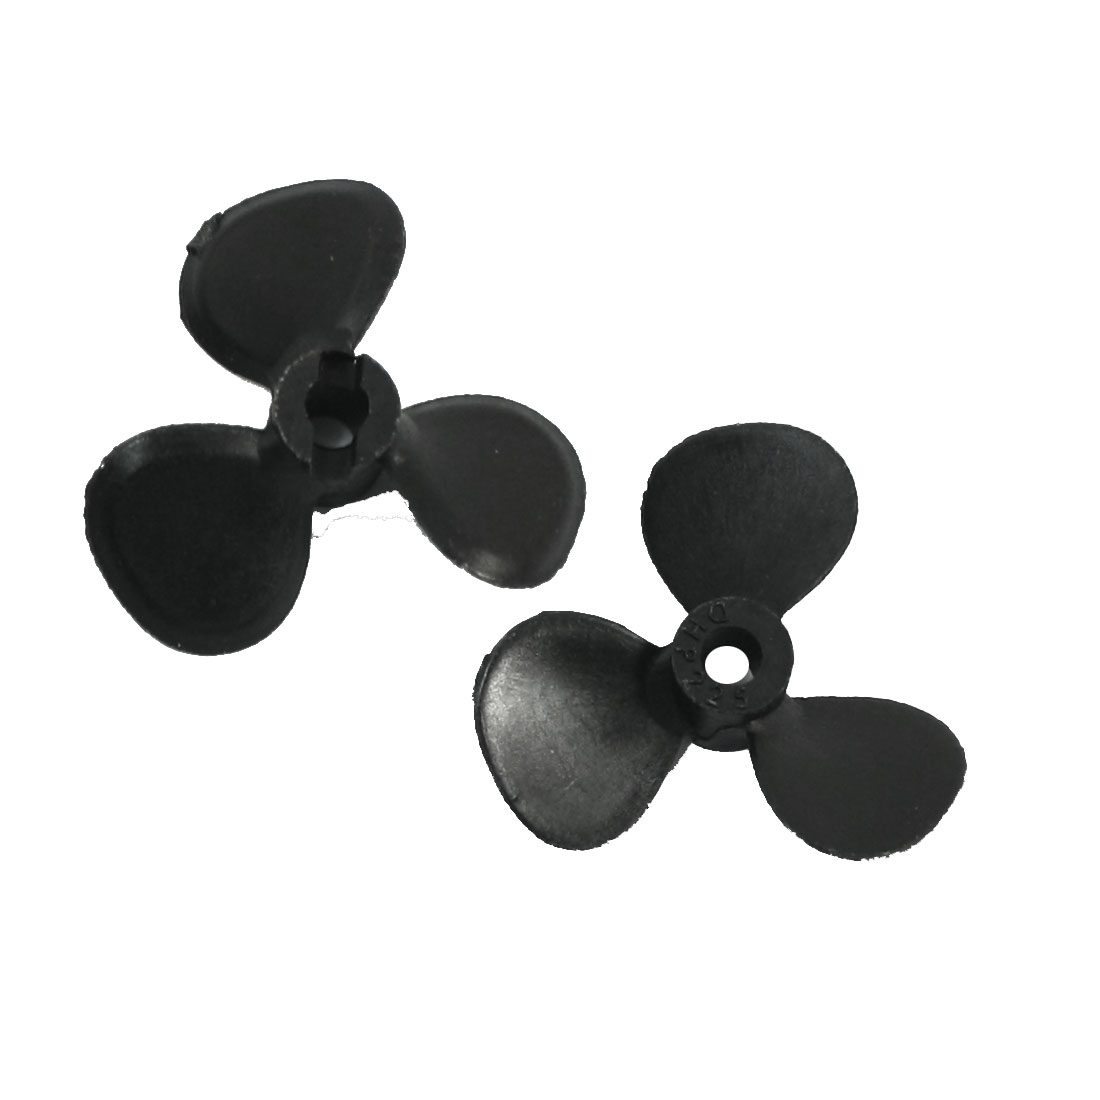 "Pair 25mm Dia P/D 1.2 Black Plastic CW CCW Positive/Reverse Rotating Prop Propeller for 1/8"" Shaft RC Model Boat Ship"